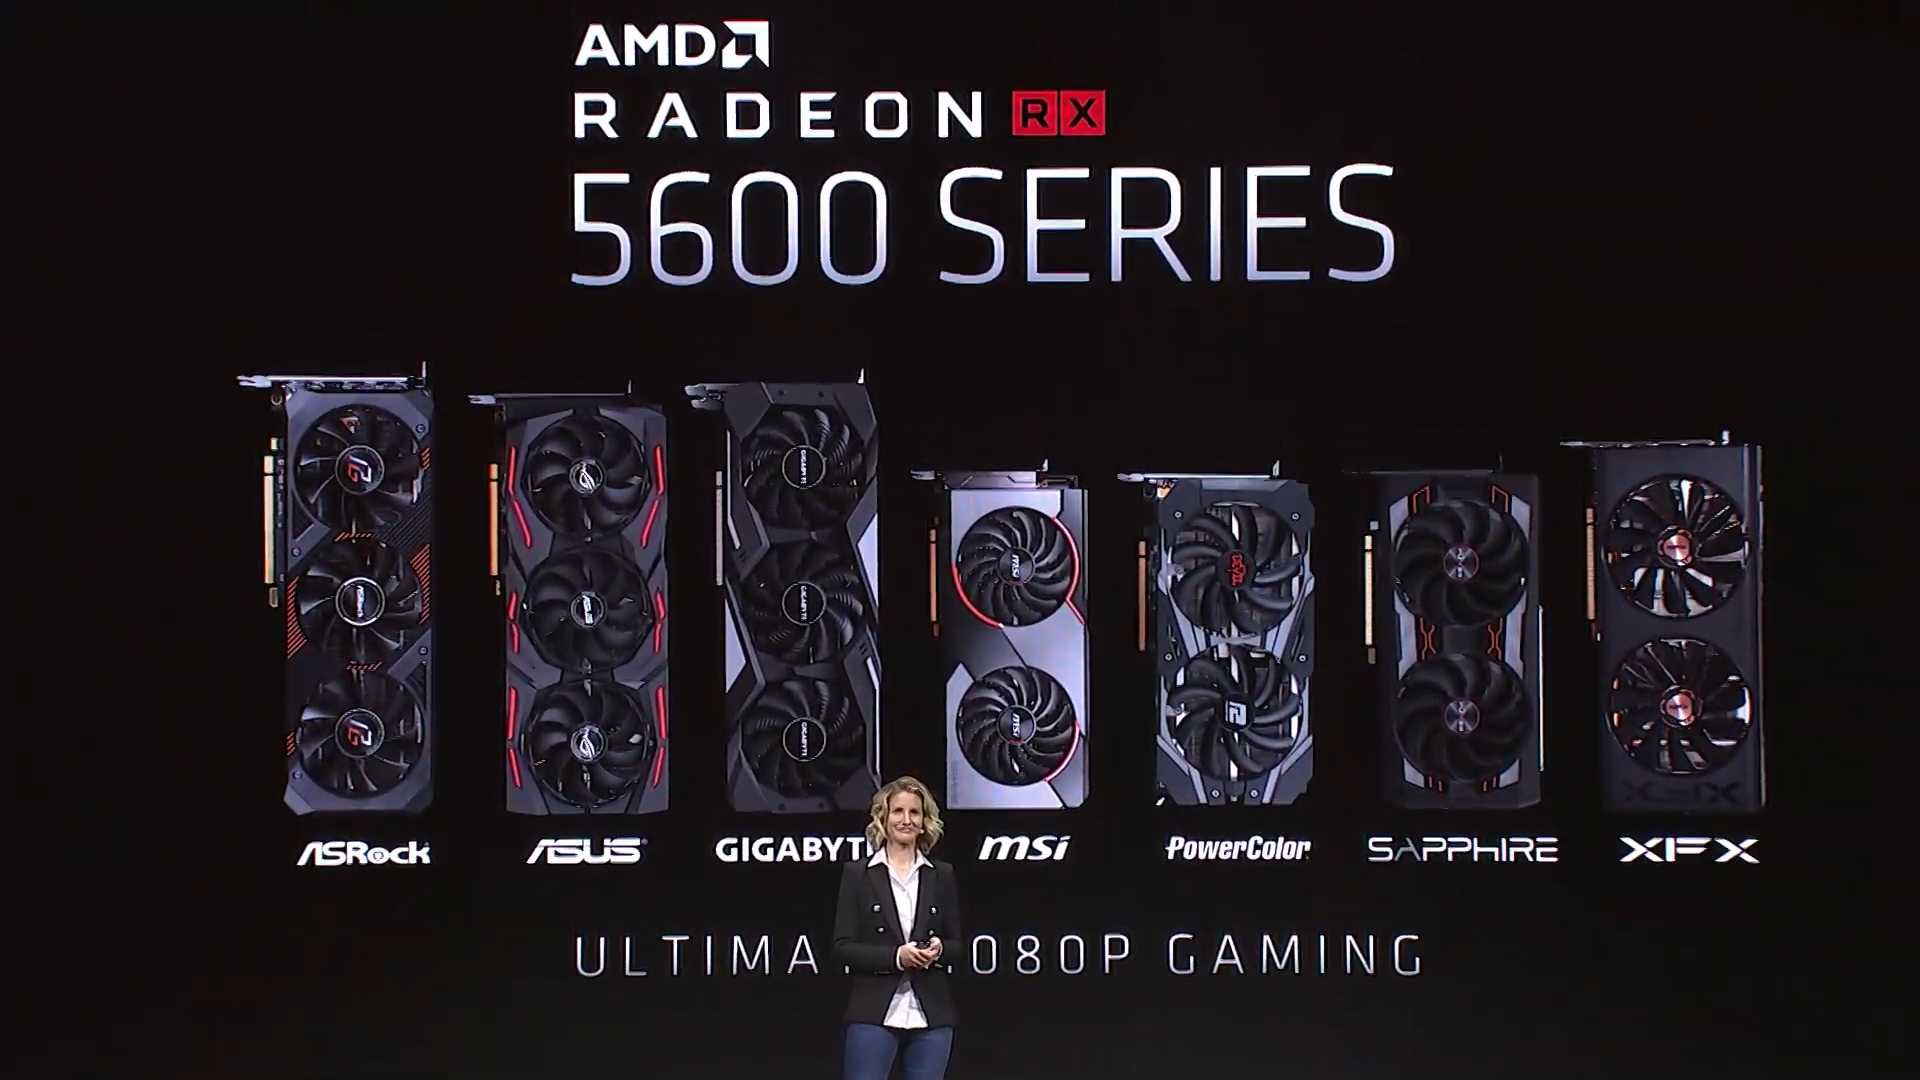 AMD's RX 5600 XT gets a speed boost to answer Nvidia's big RTX 2060 price cut